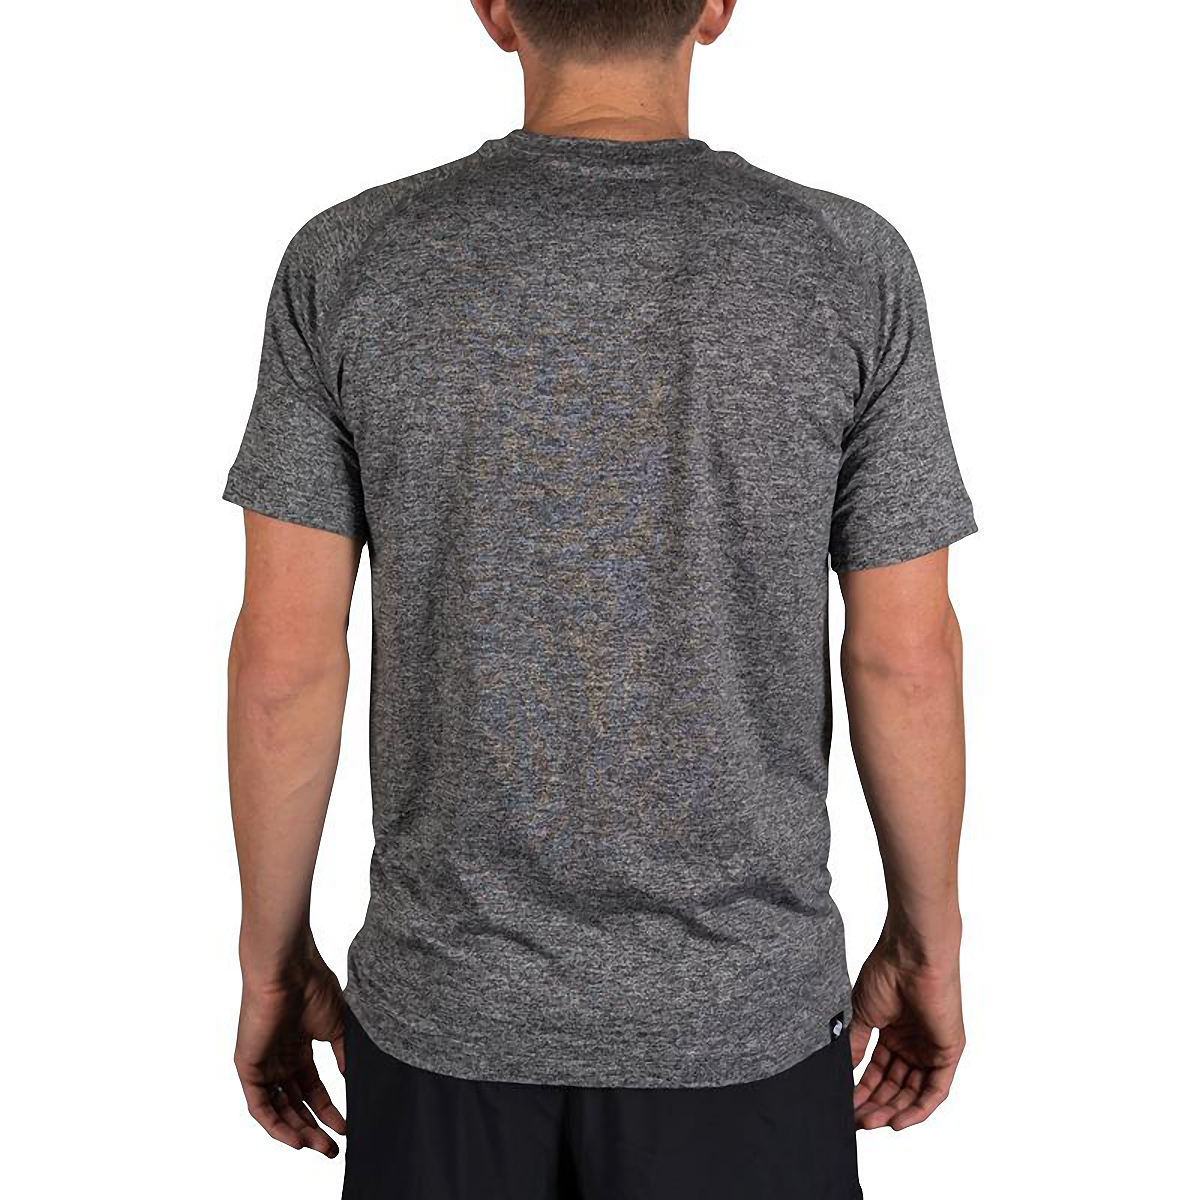 Men's Rabbit EZ Short Sleeve Tee - Color: Charcoal Heather - Size: XS, Charcoal Heather, large, image 2